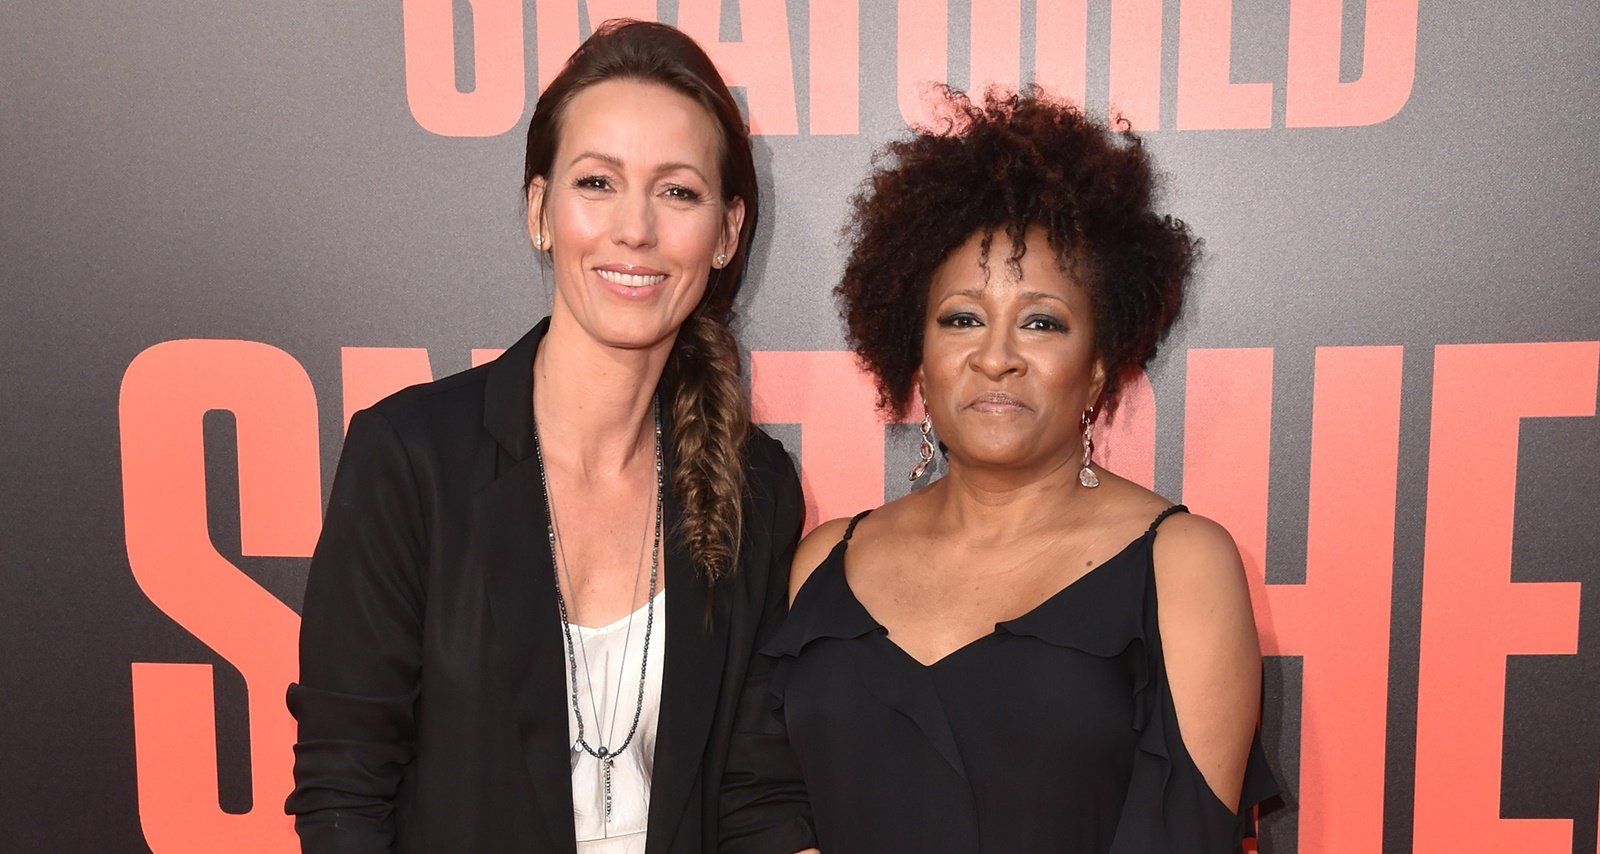 Alex Sykes Wiki: Facts to Know about Wanda Sykes' Wife